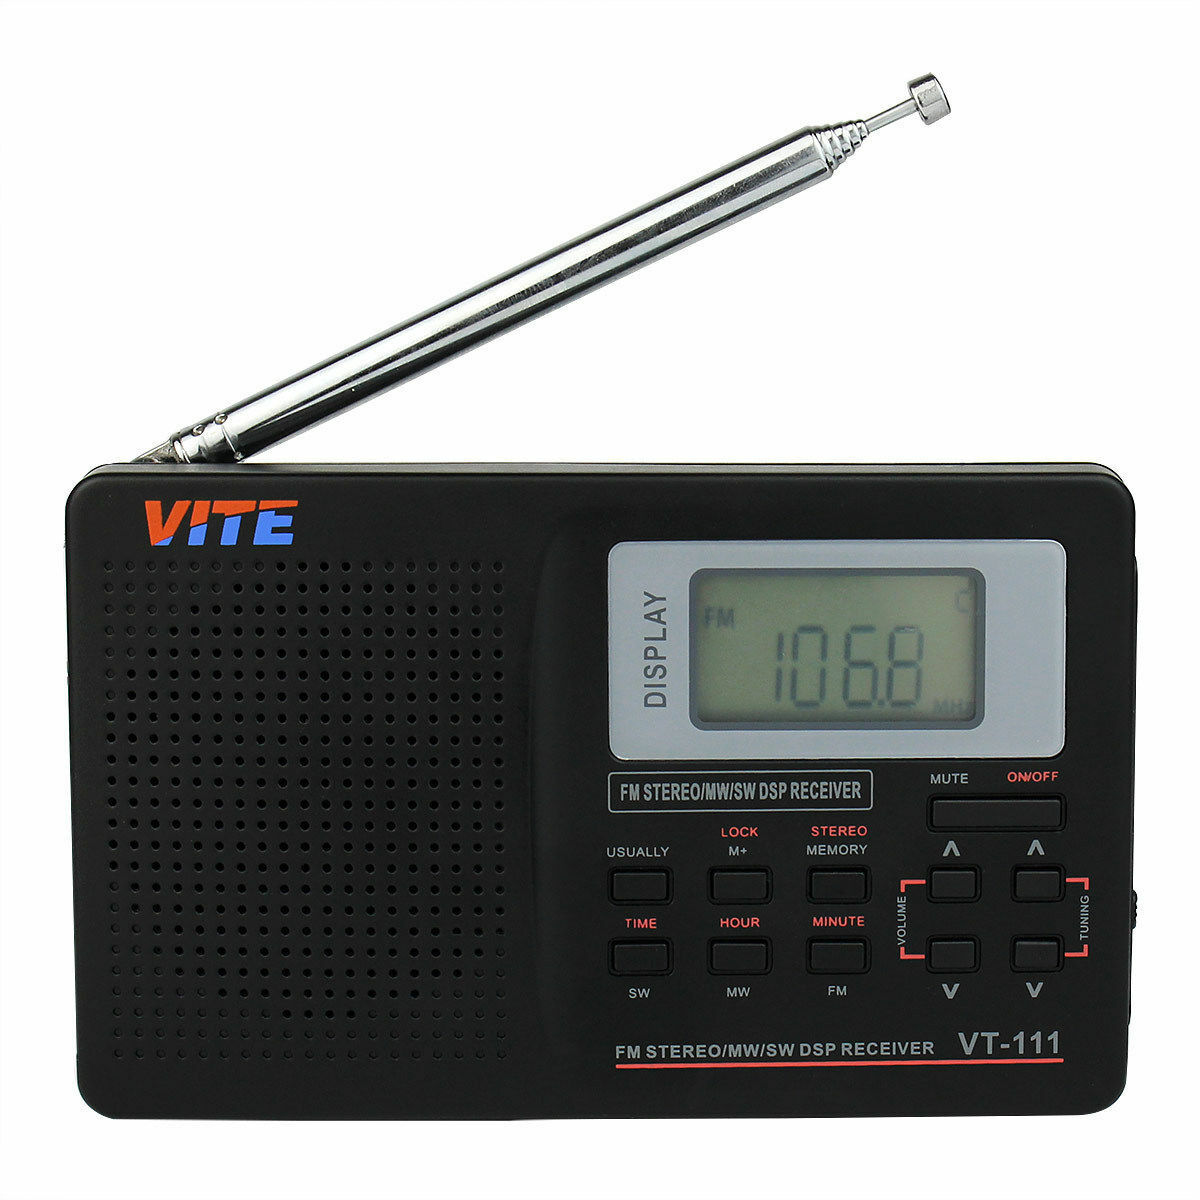 world band receiver portable digital radio fm sw mw. Black Bedroom Furniture Sets. Home Design Ideas